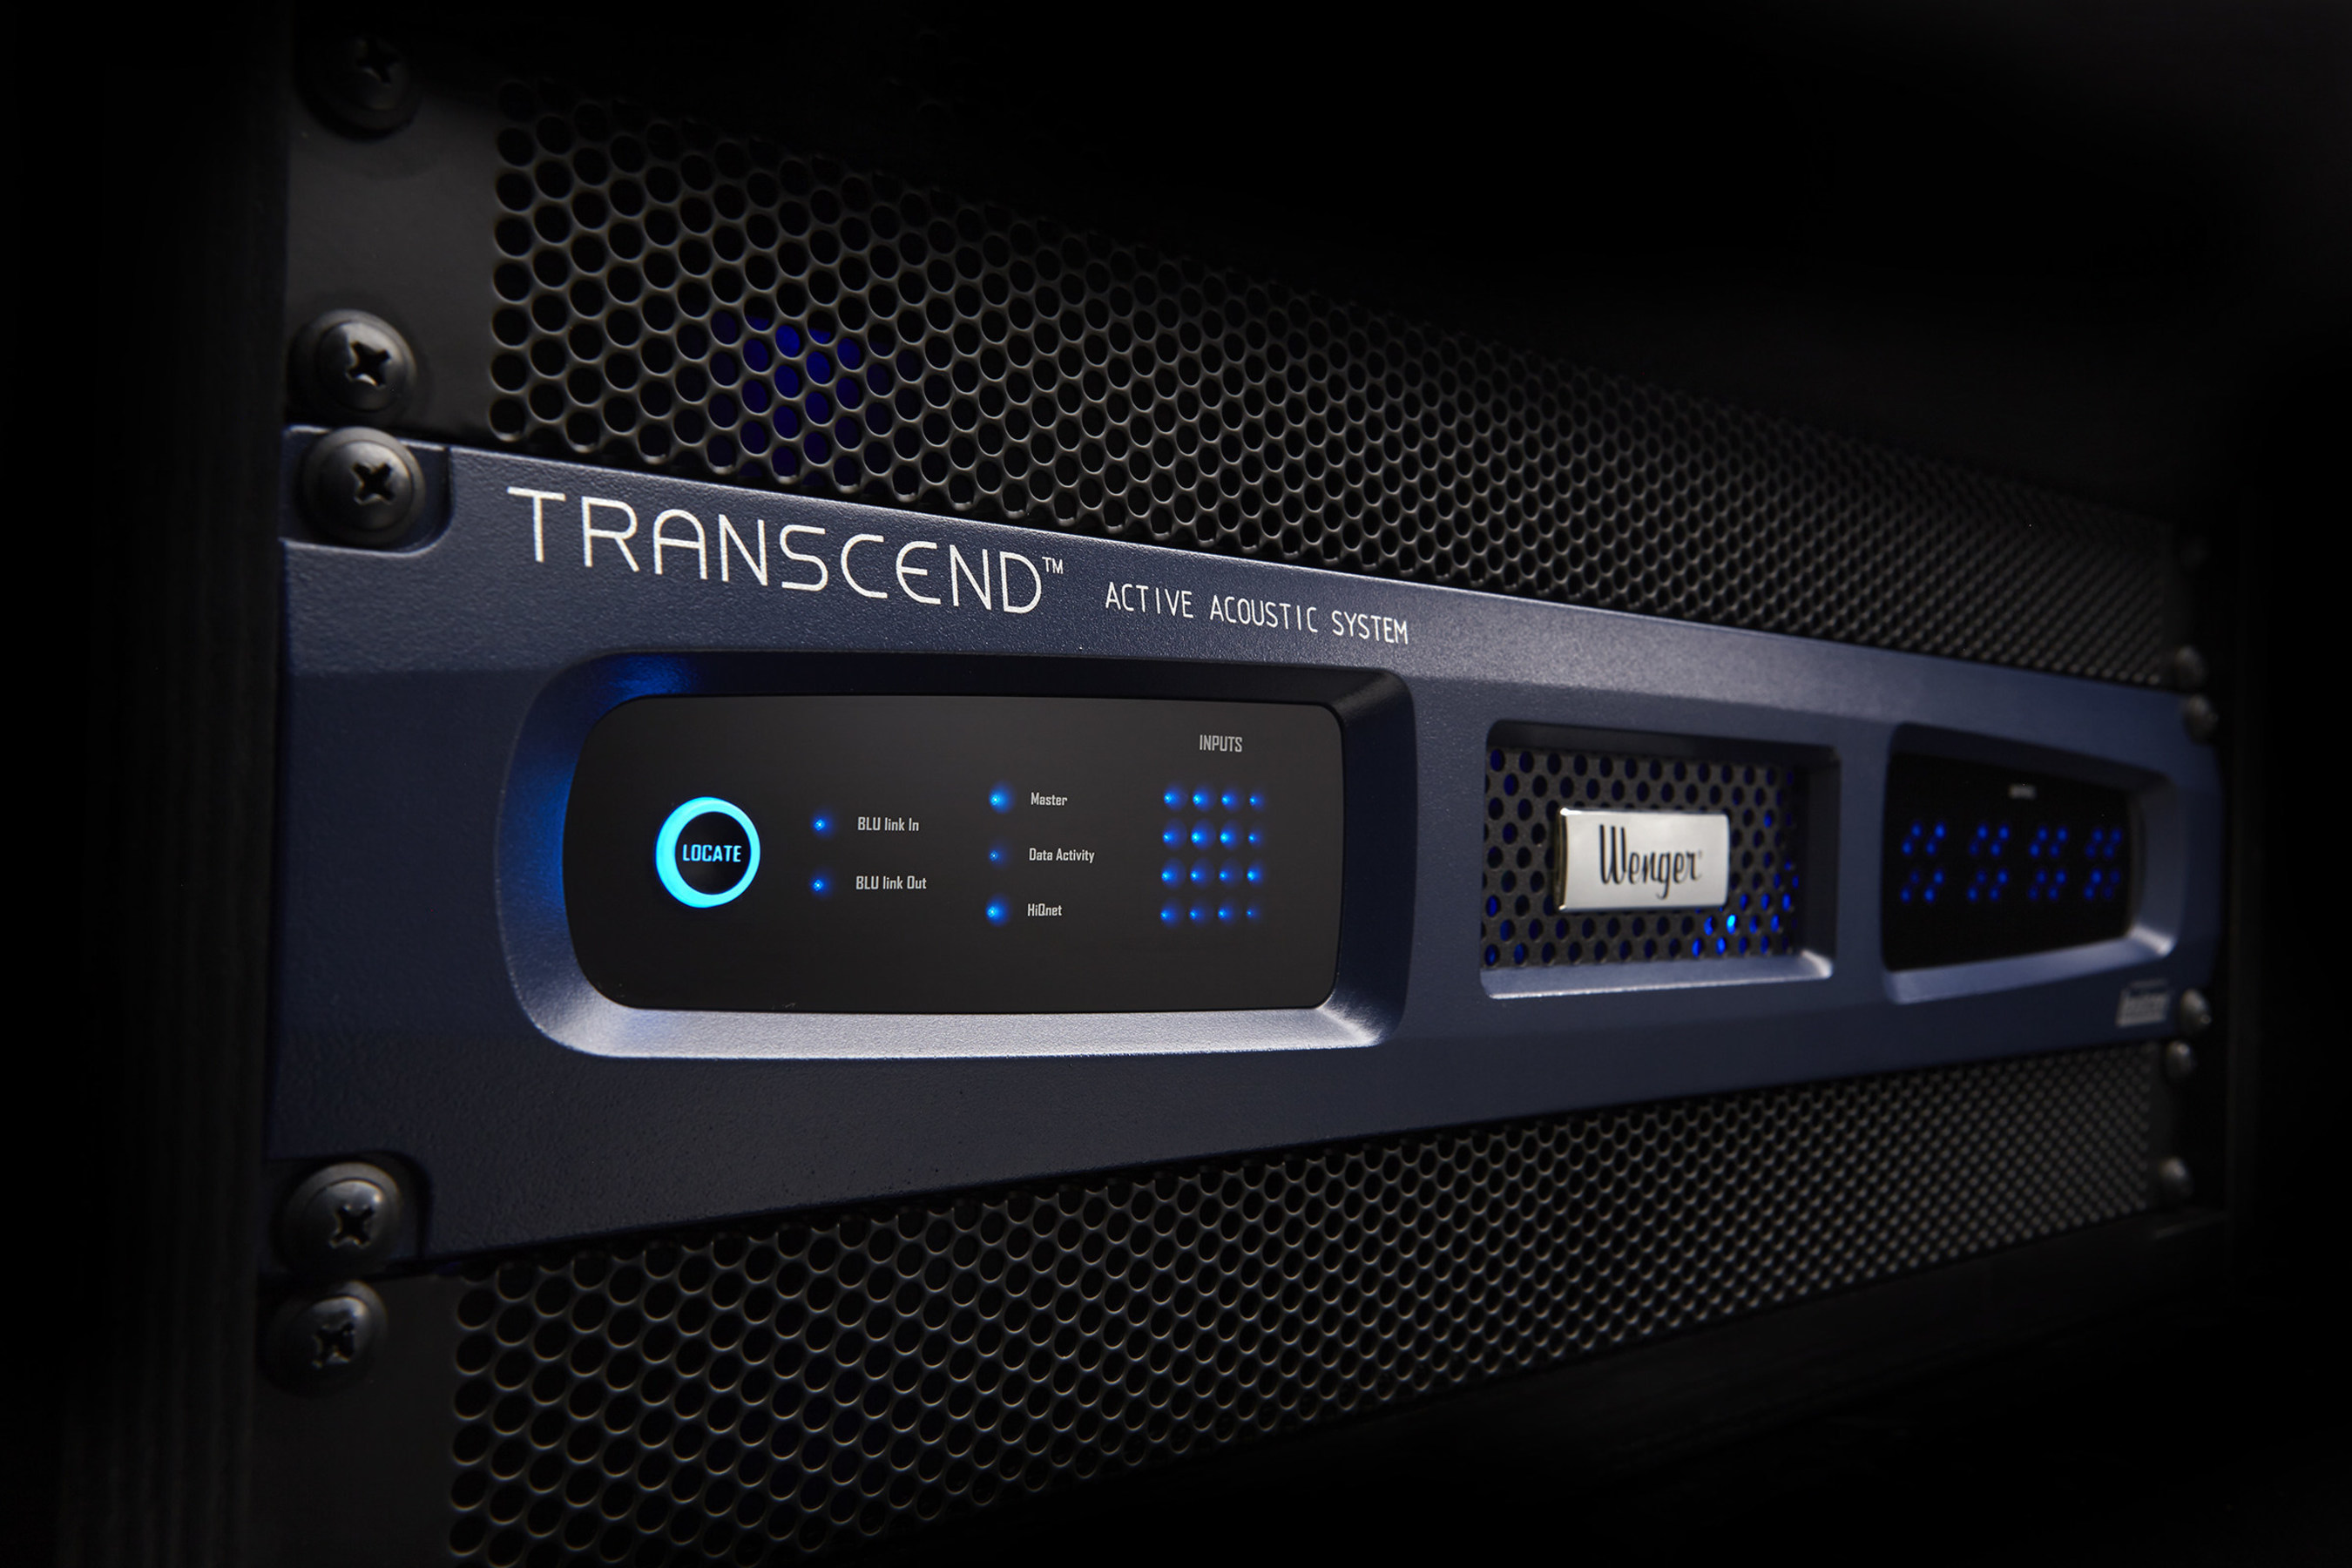 Wenger introduces Transcend(TM) Active Acoustic System with HARMAN Lexicon technology.